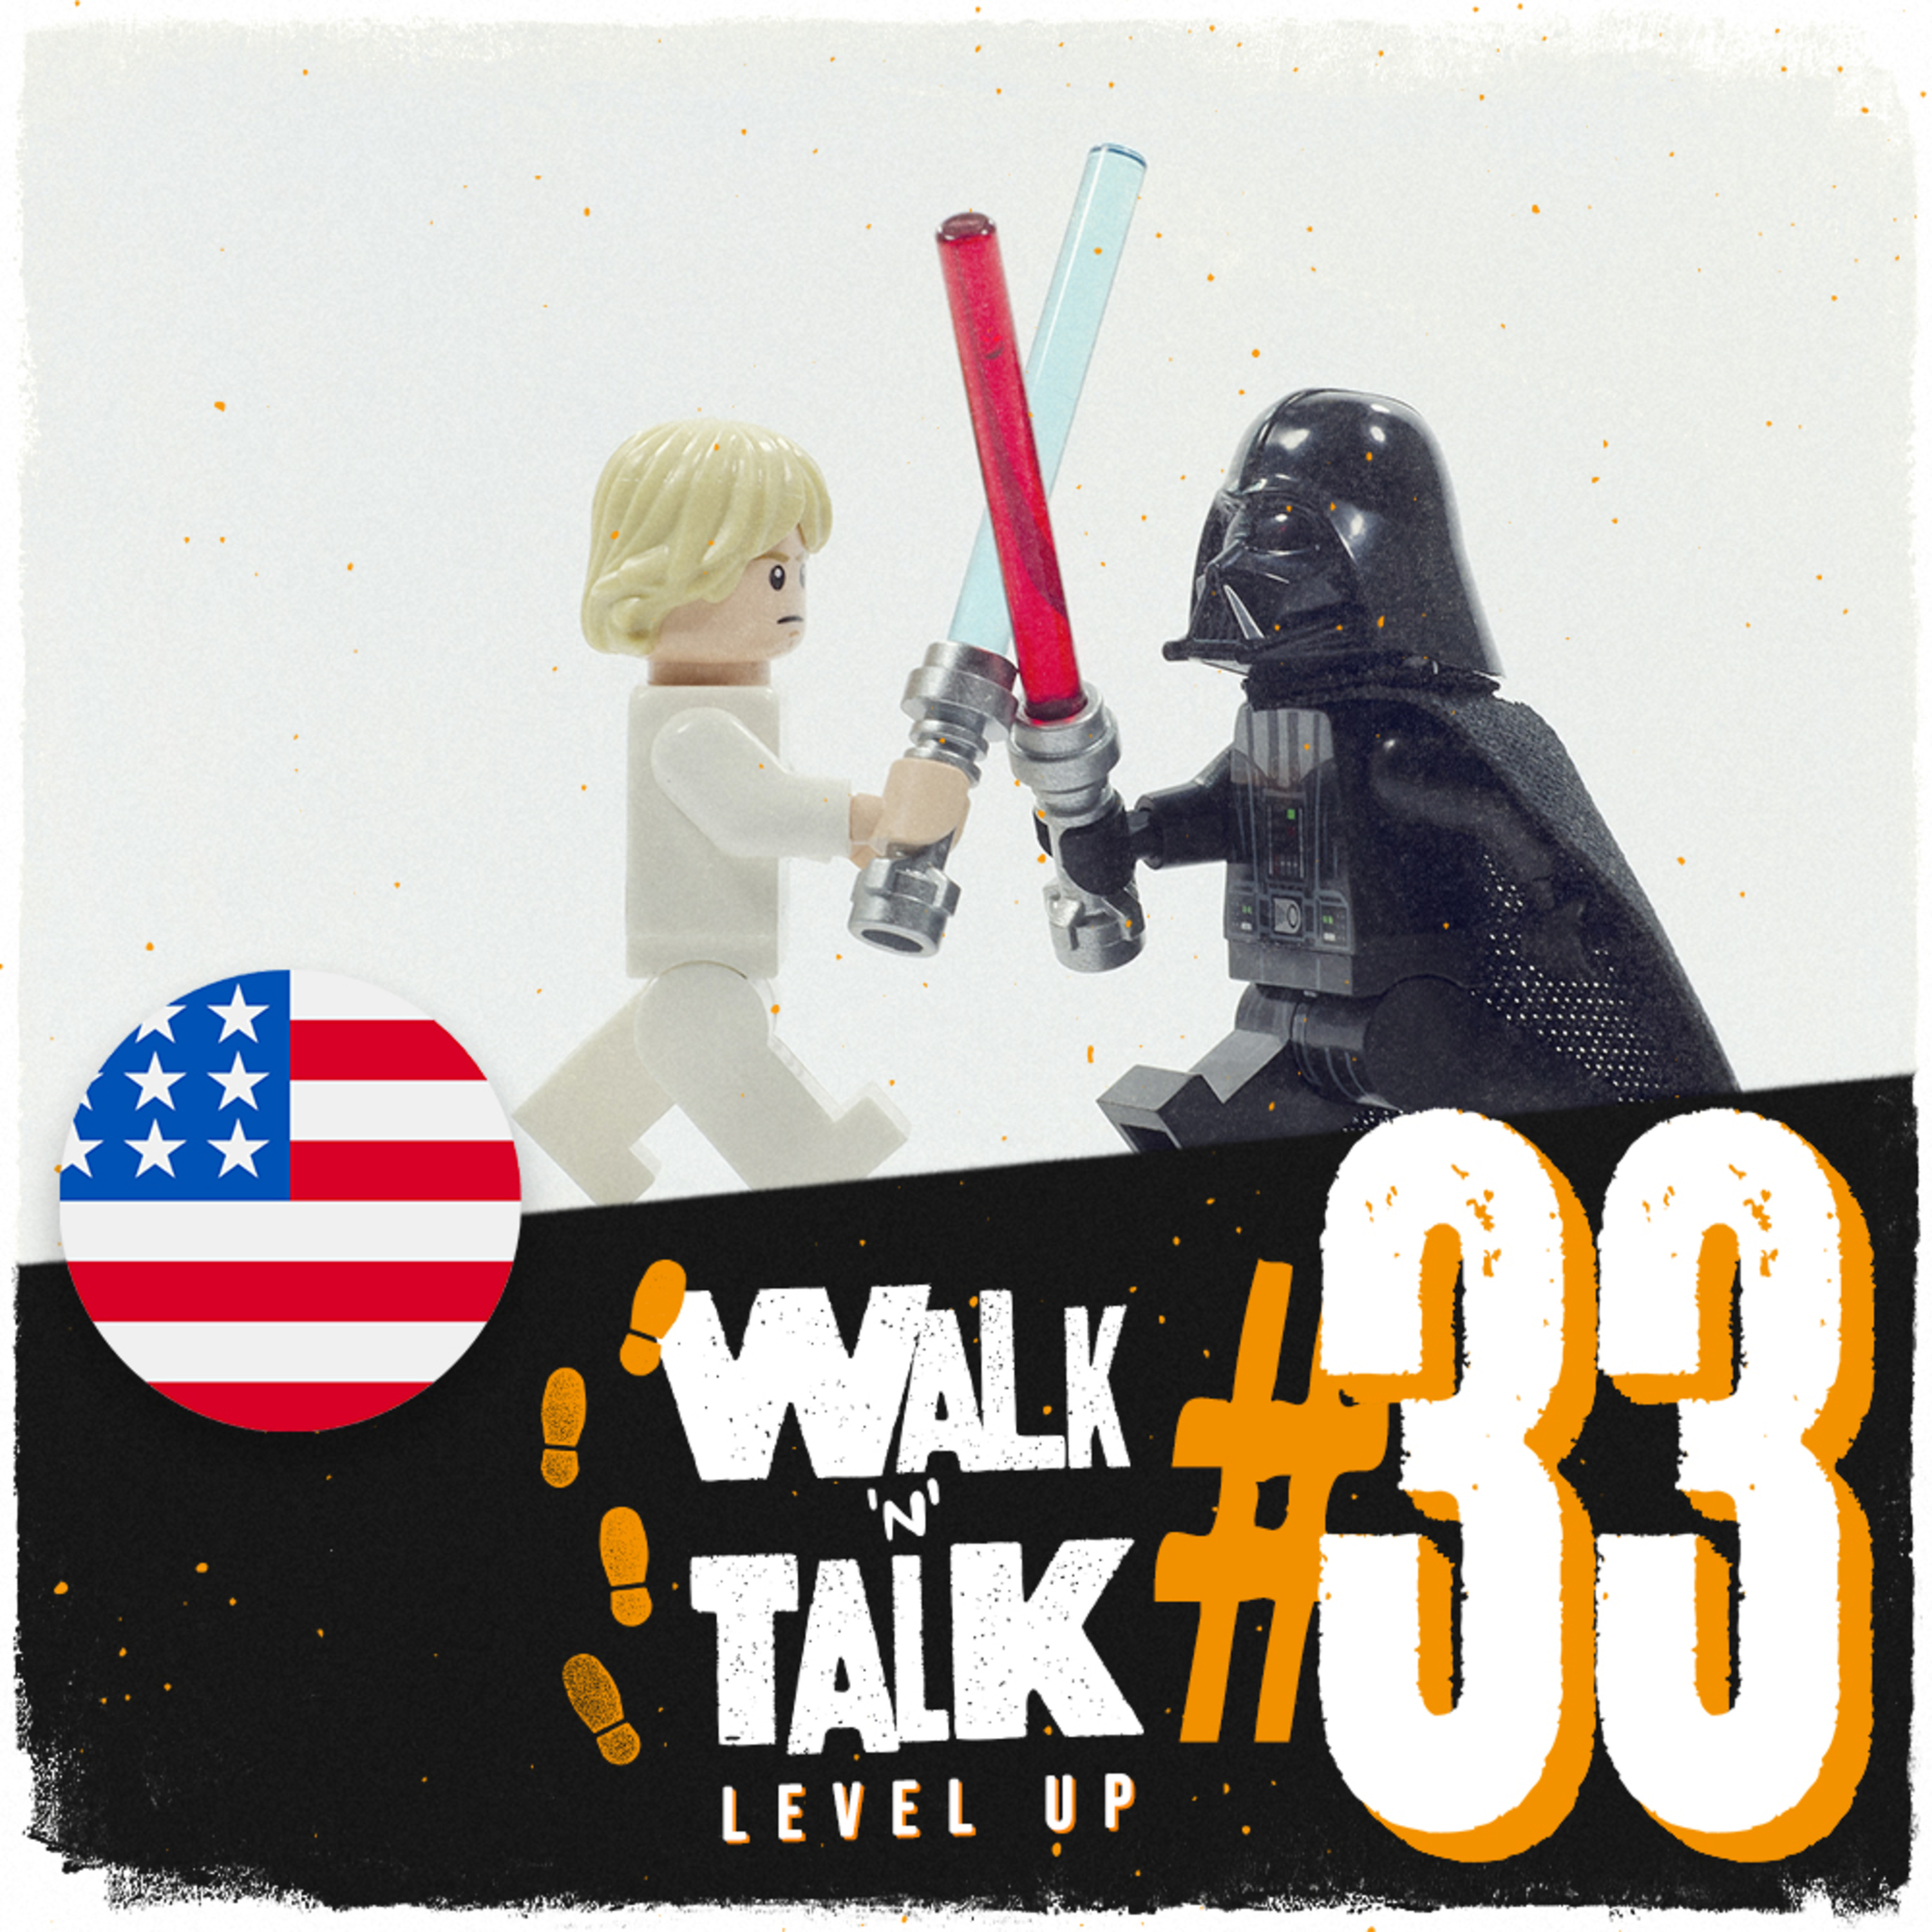 Walk 'n' Talk Level Up #33 - May the force be with you